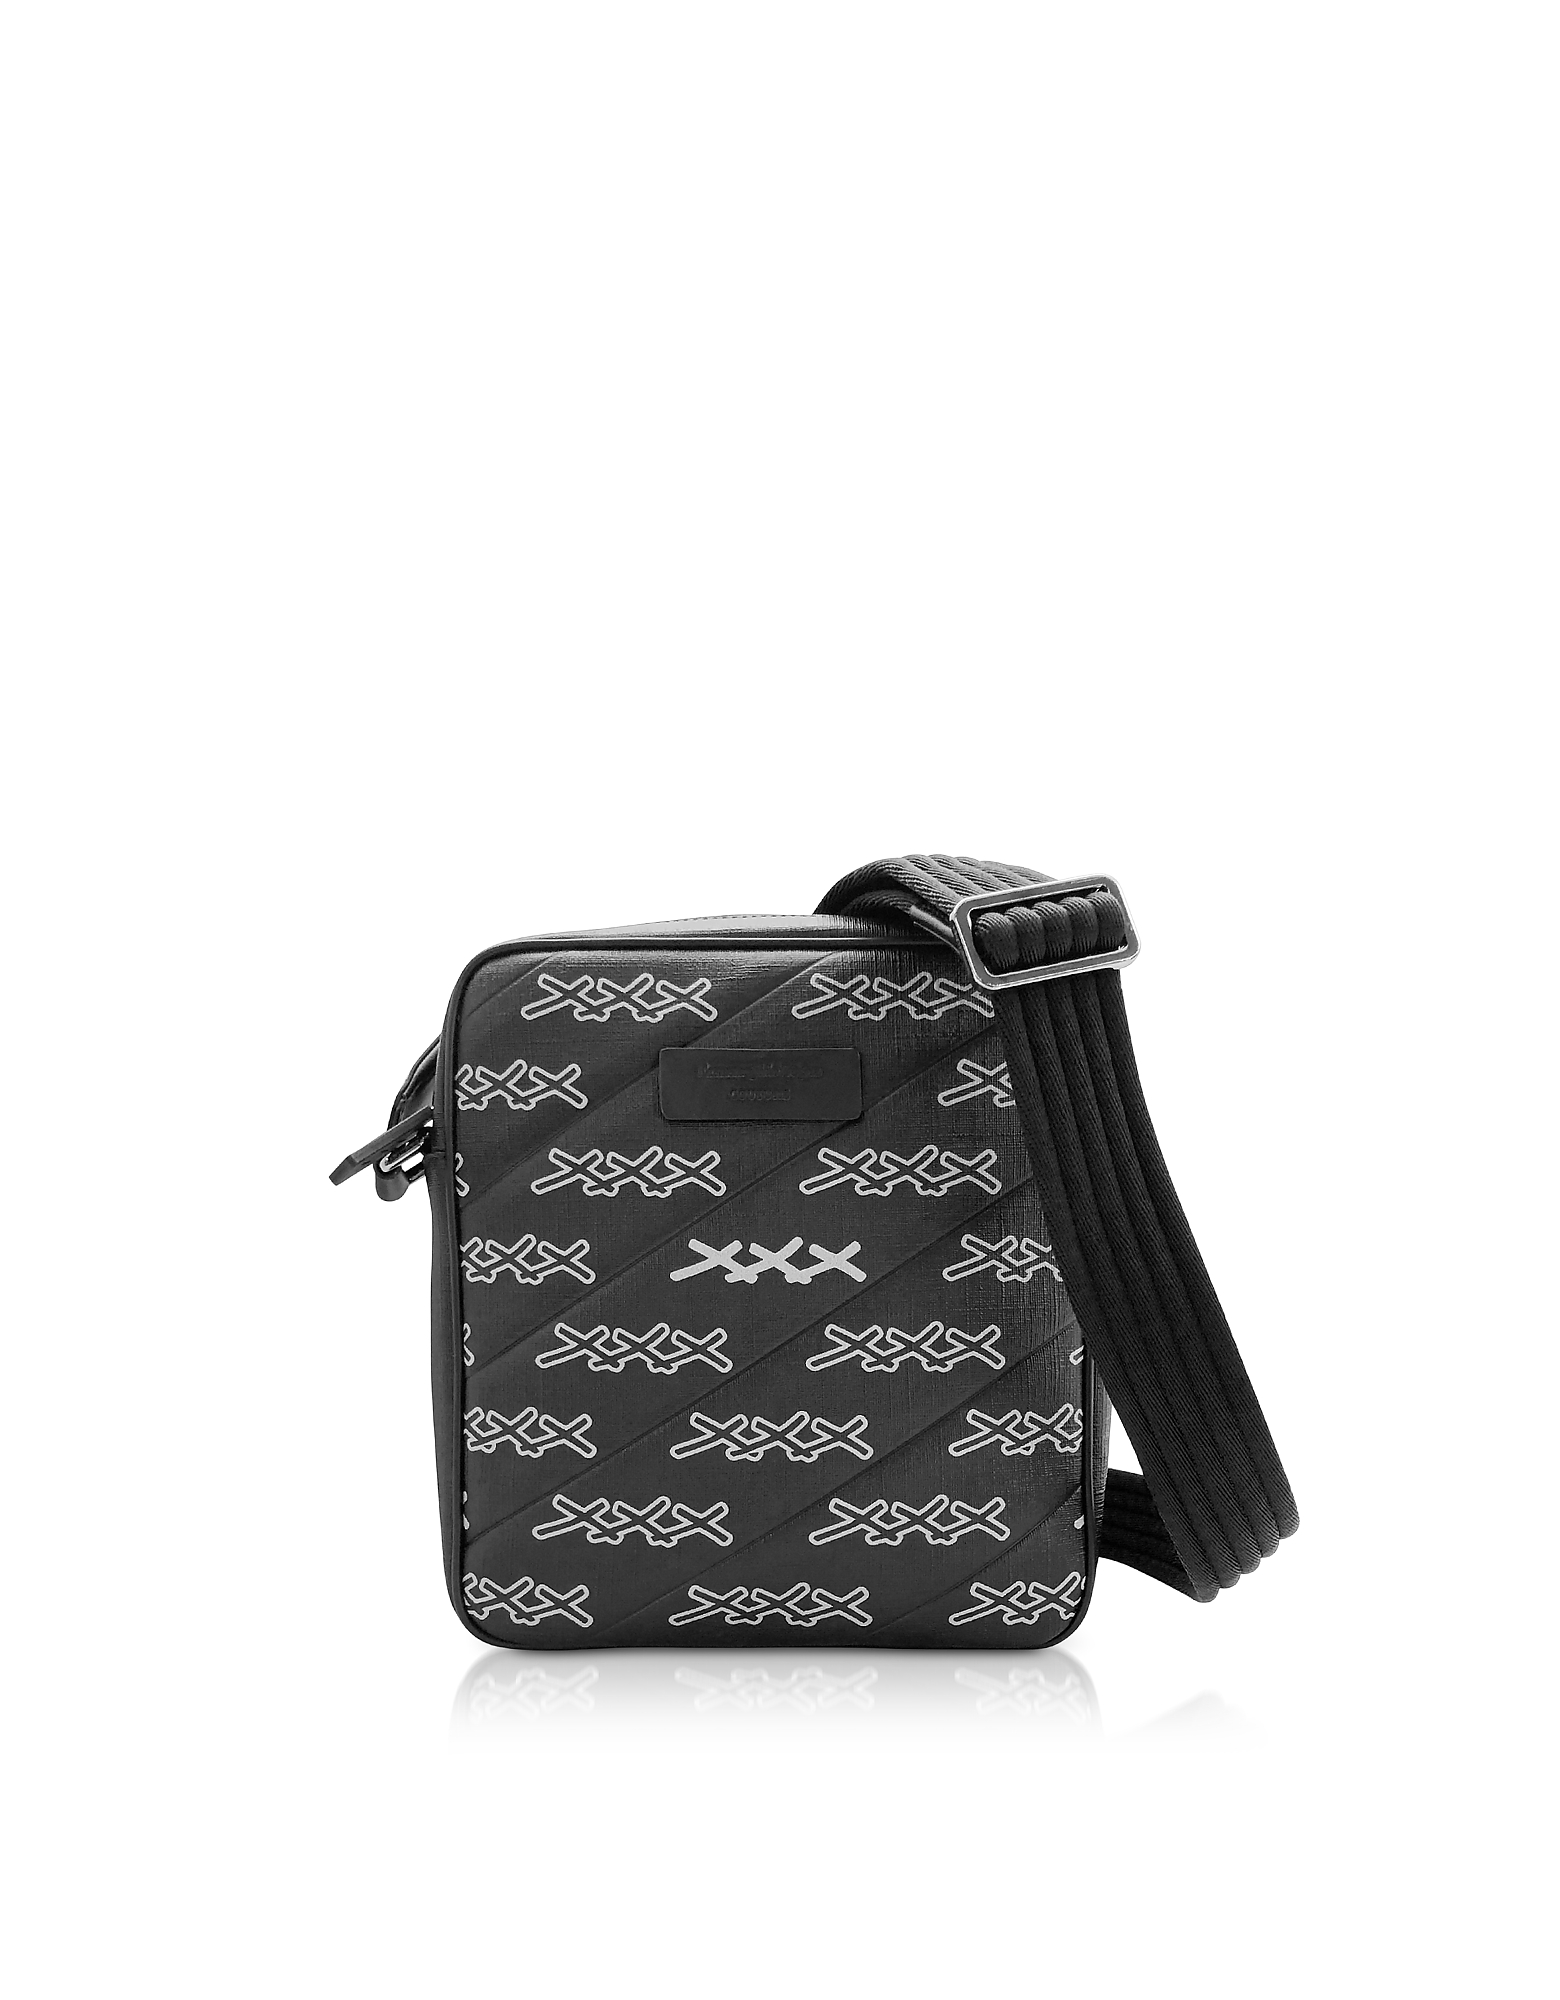 Black Coated Canvas Signature Crossbody Bag